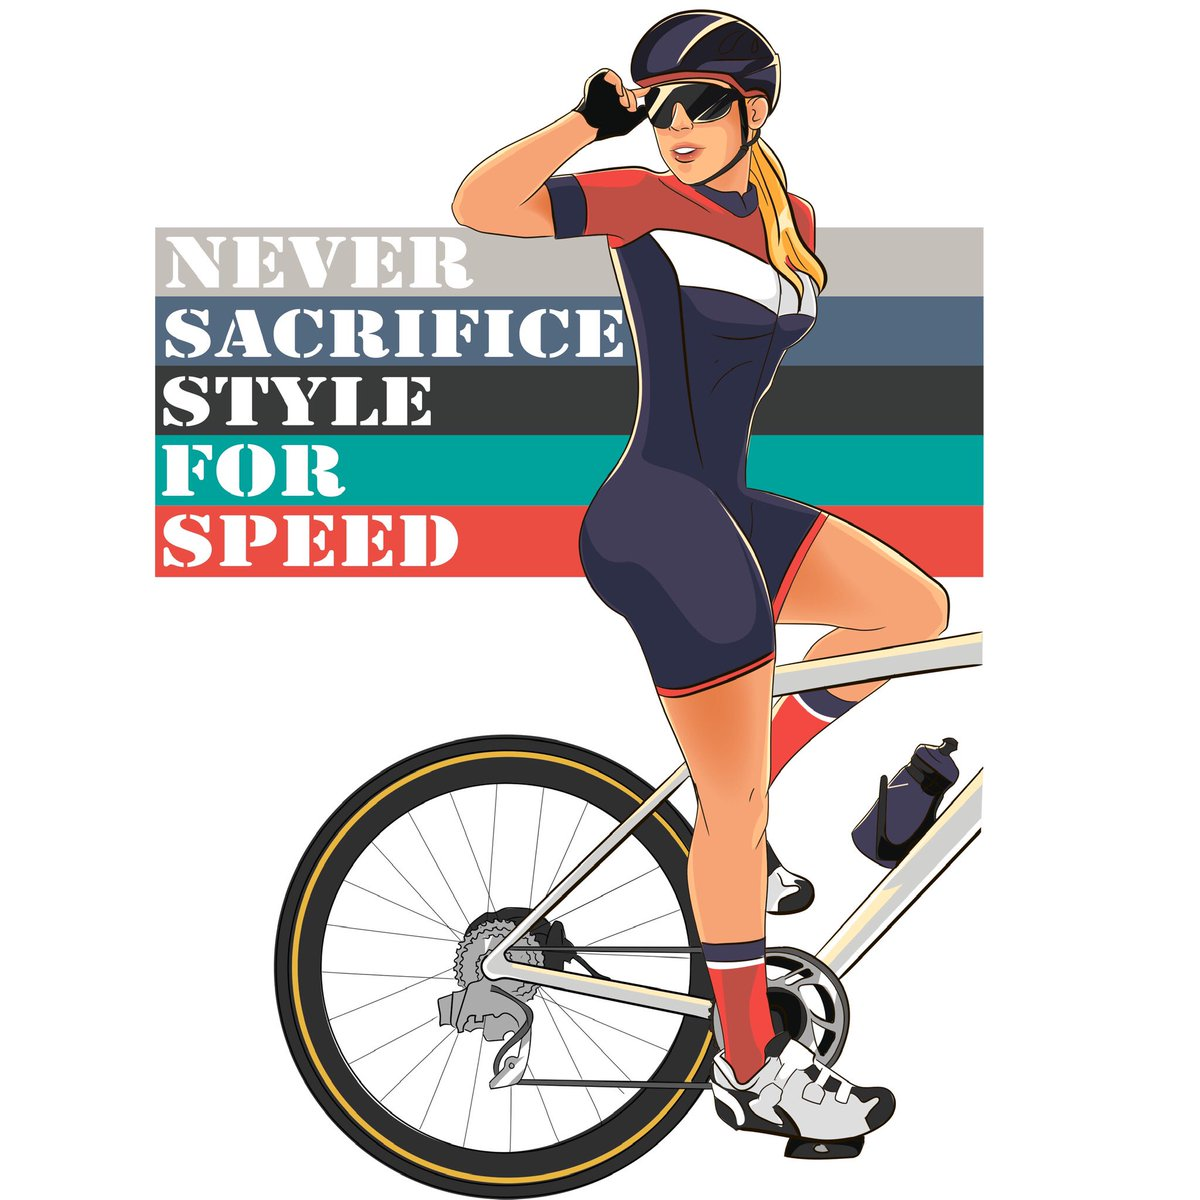 How much is important style in our sport?Well... You know that you will never sacrifice style for speed, yeah? 😎#CyclingWomen #cyclingstyle #cyclingisnormal #velostyle